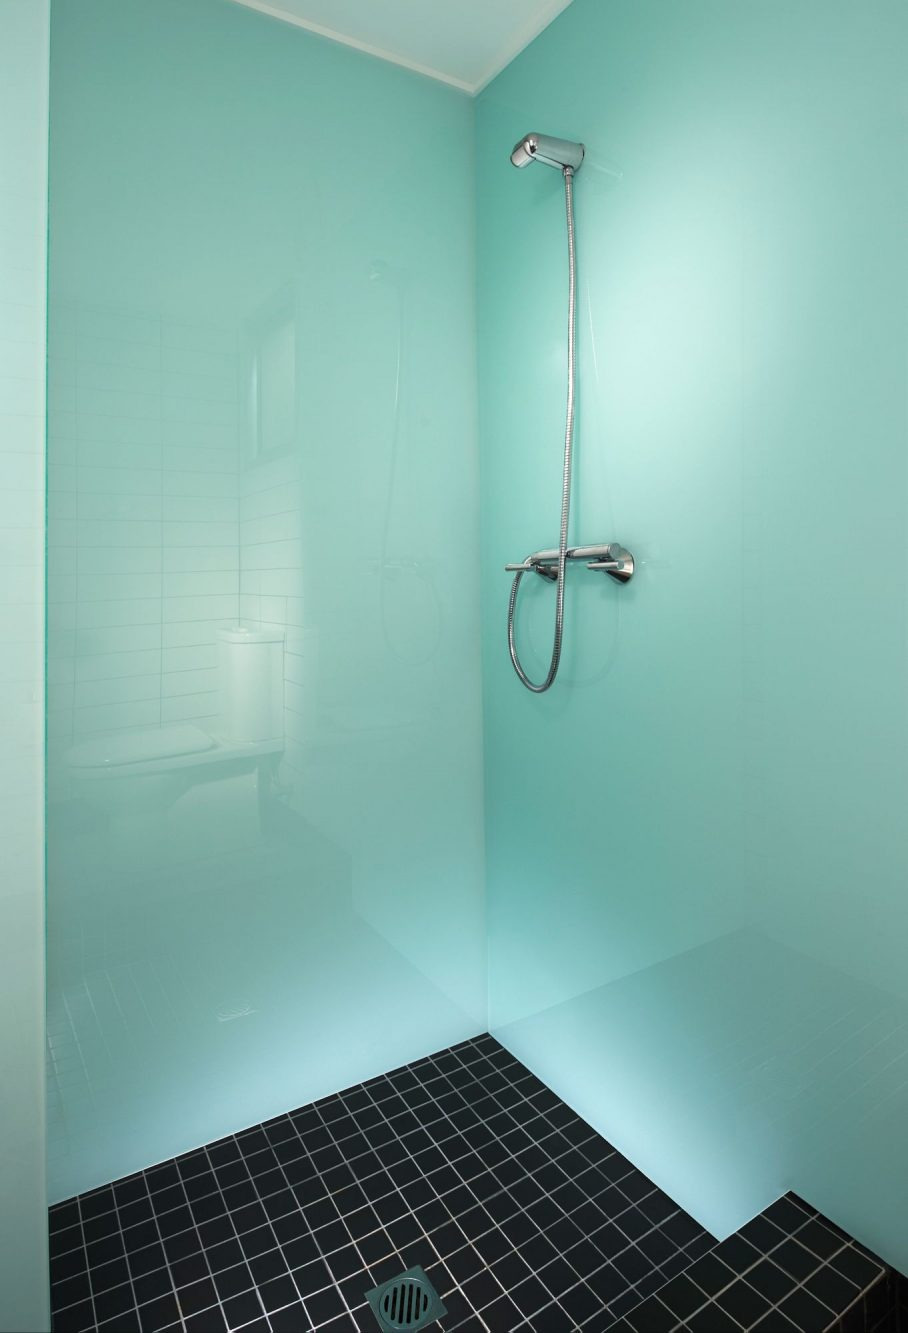 Design Glass Wall Panels Fresh Glass Wall Interior Panel for Shower Half Canada Cost the